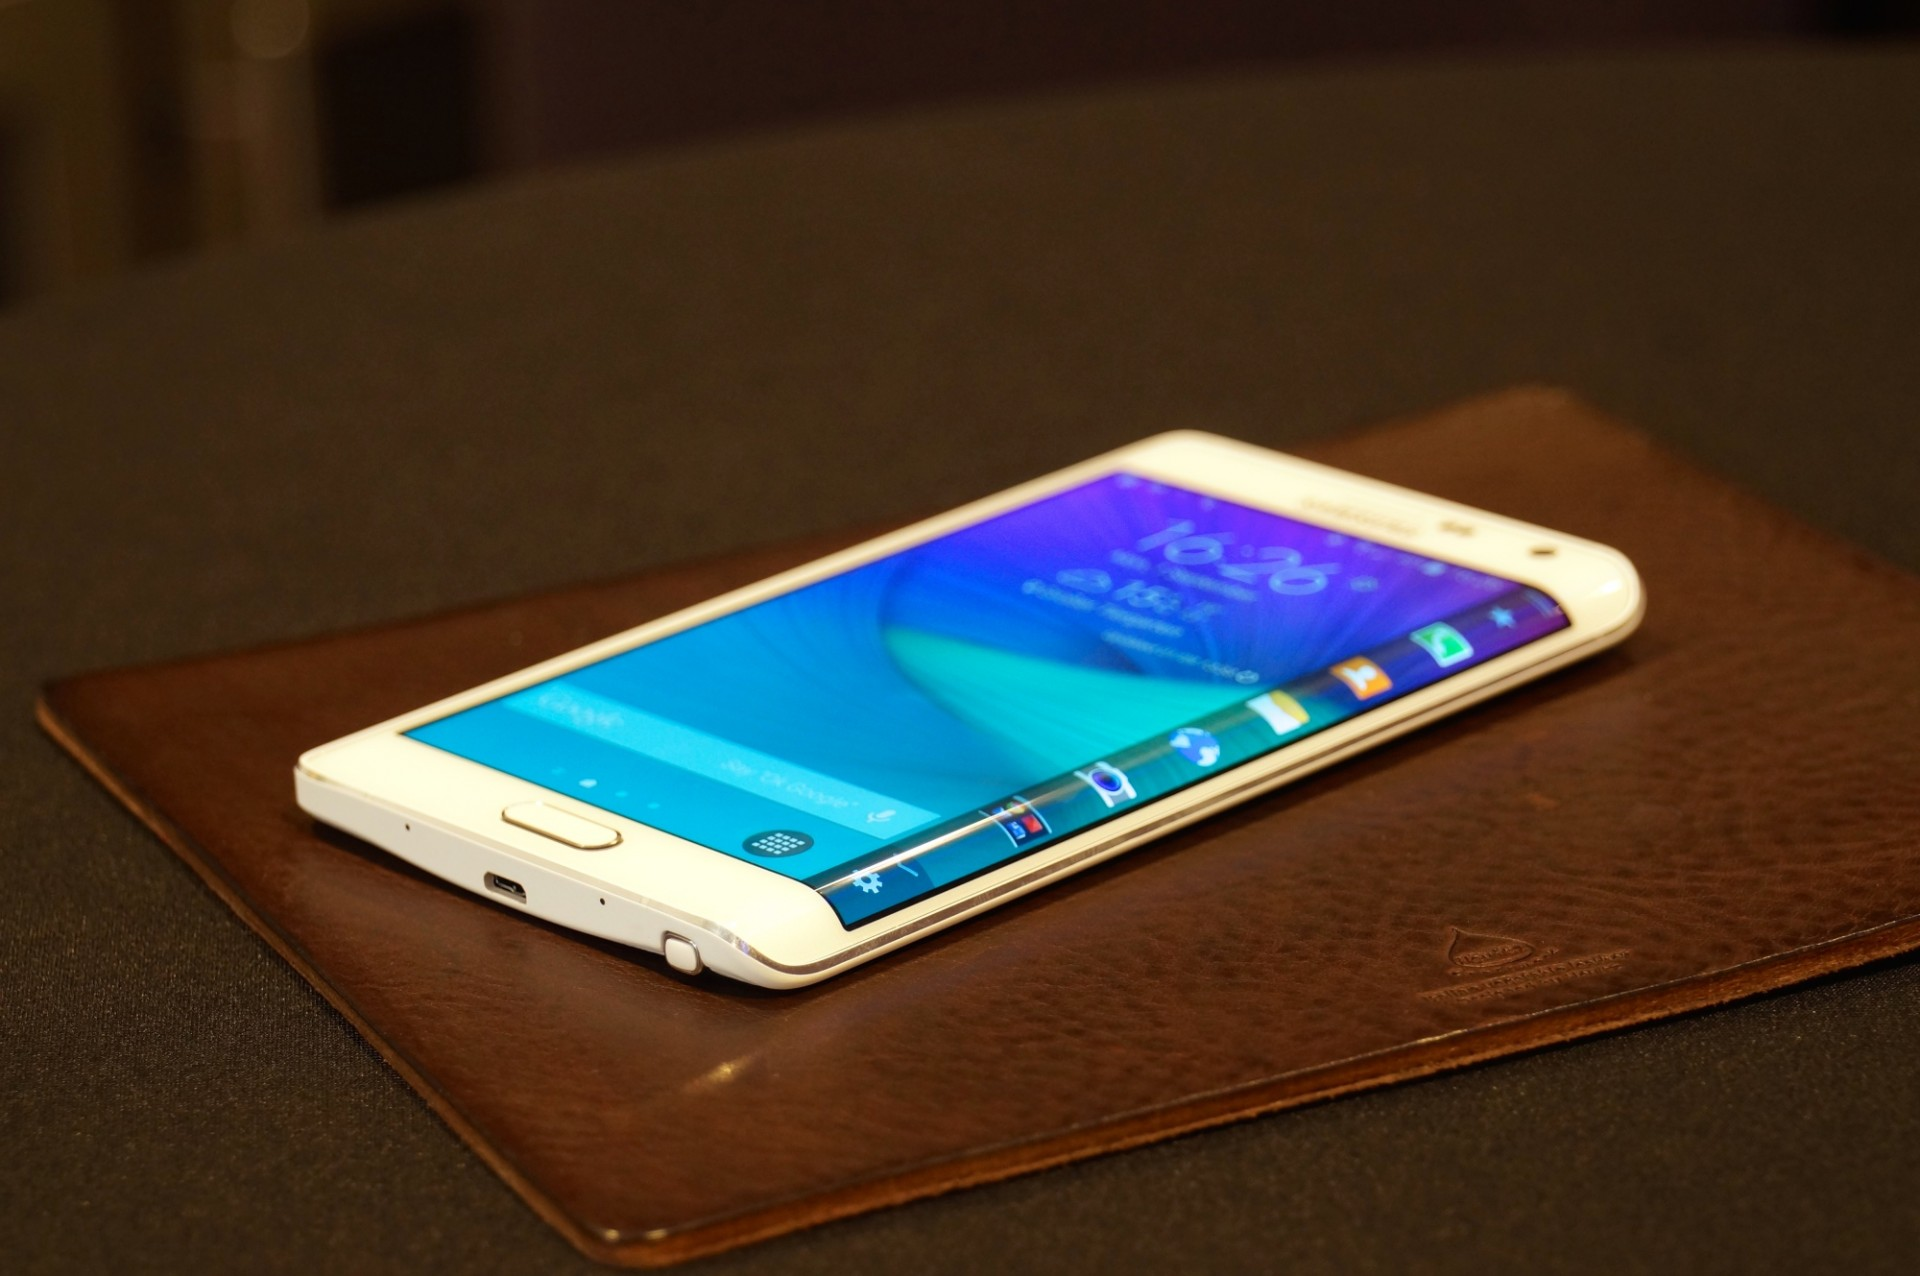 Samsung Galaxy Note Edge: Innovative Screen Technology but is it Truly Practical?